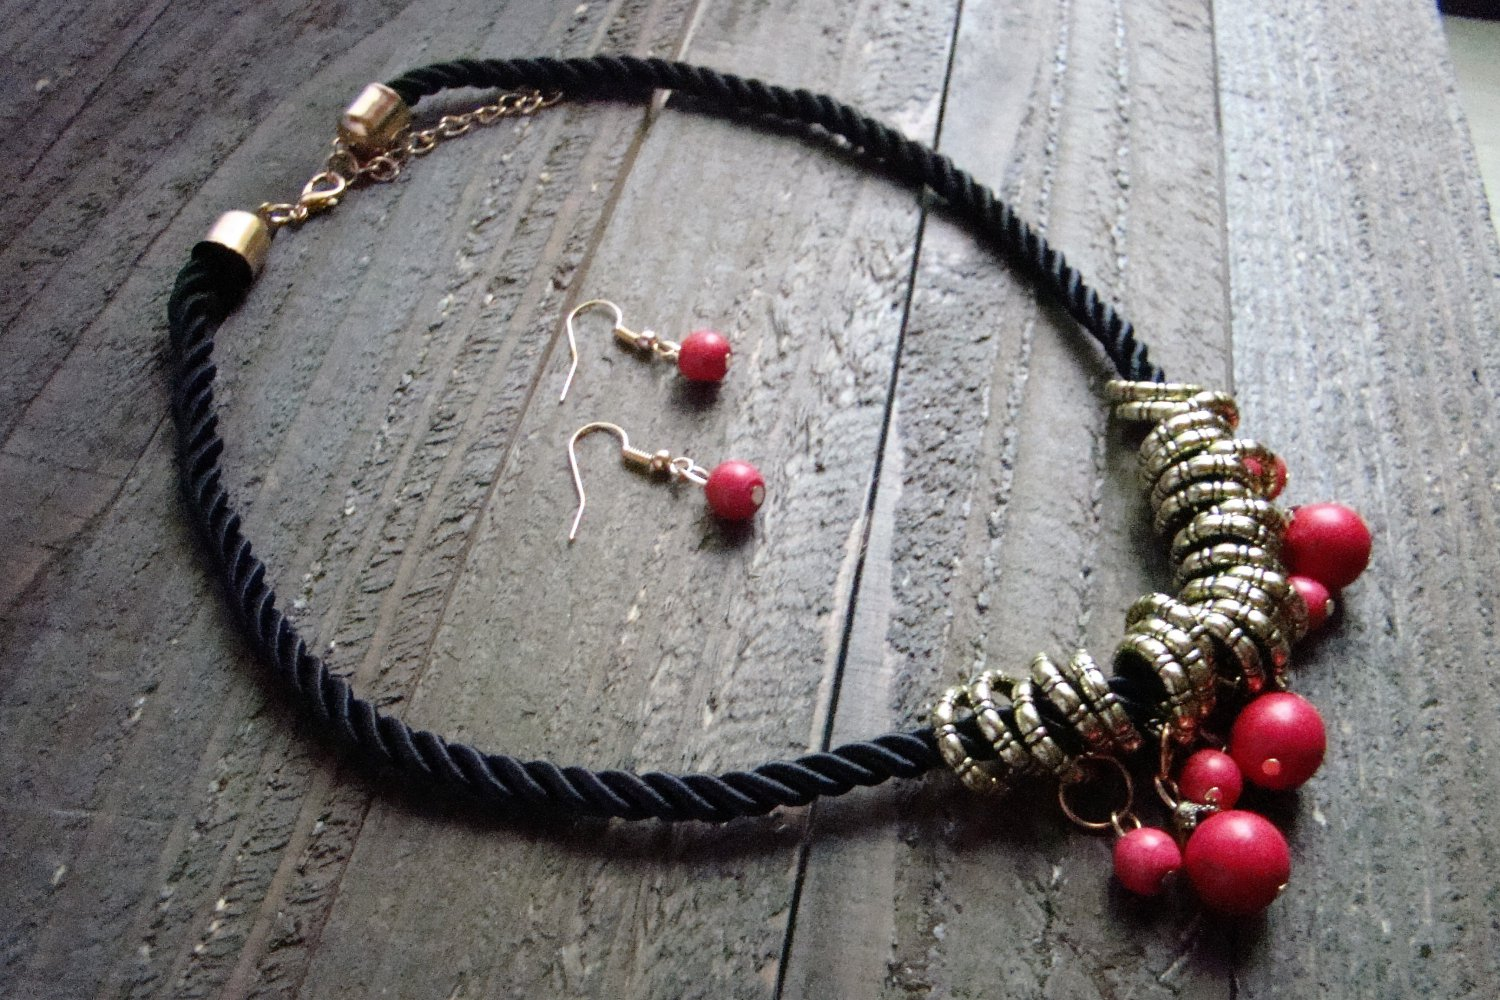 Dangle Red Bead Gold Rings Rope Cord Statement Necklace Earrings Set Boho Fashion Jewelry